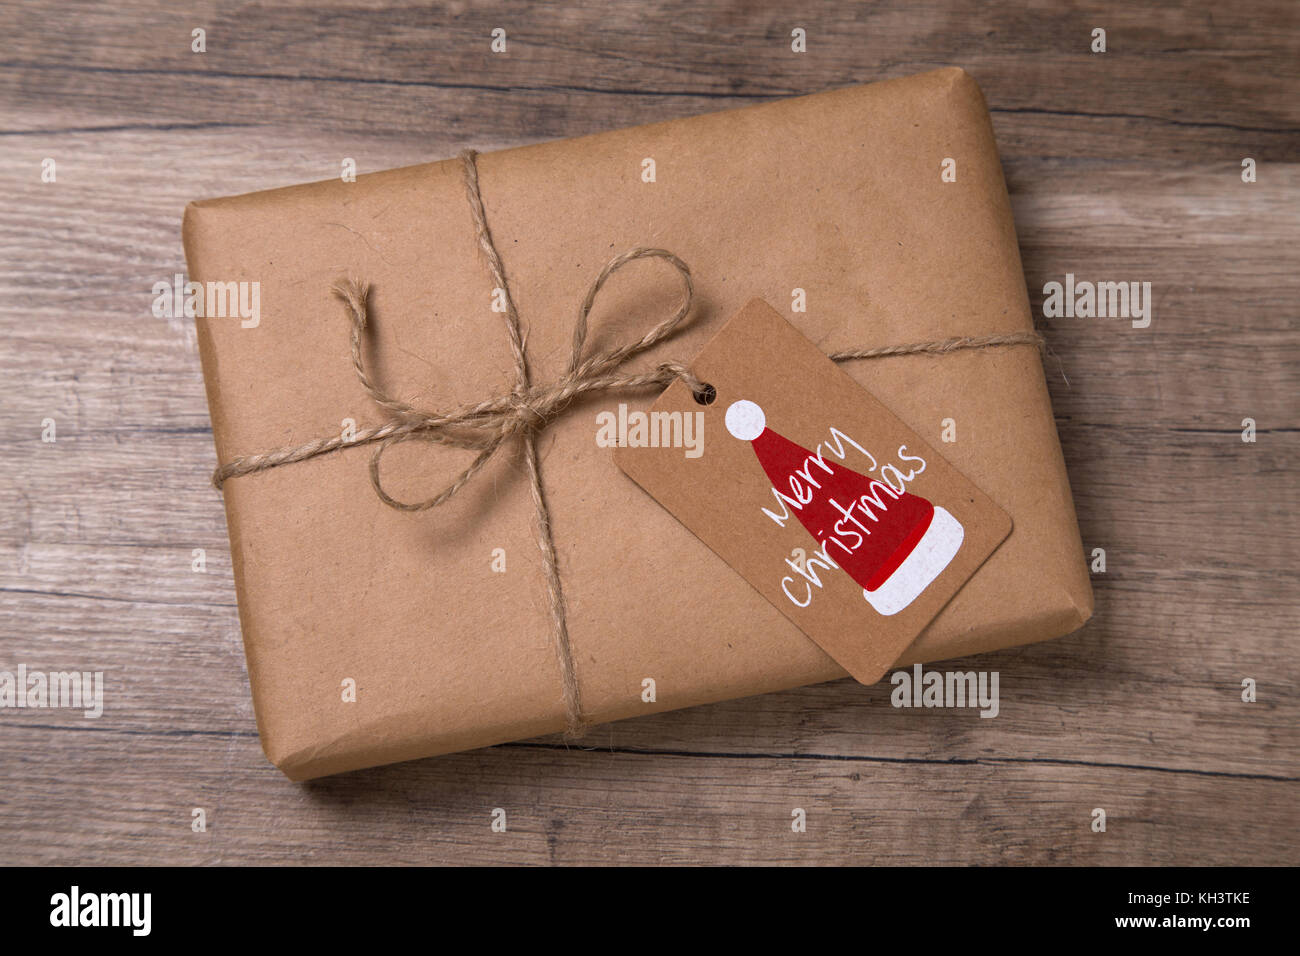 christmas or new year gift box wrapped in kraft paper with blank gift tag on old wooden background